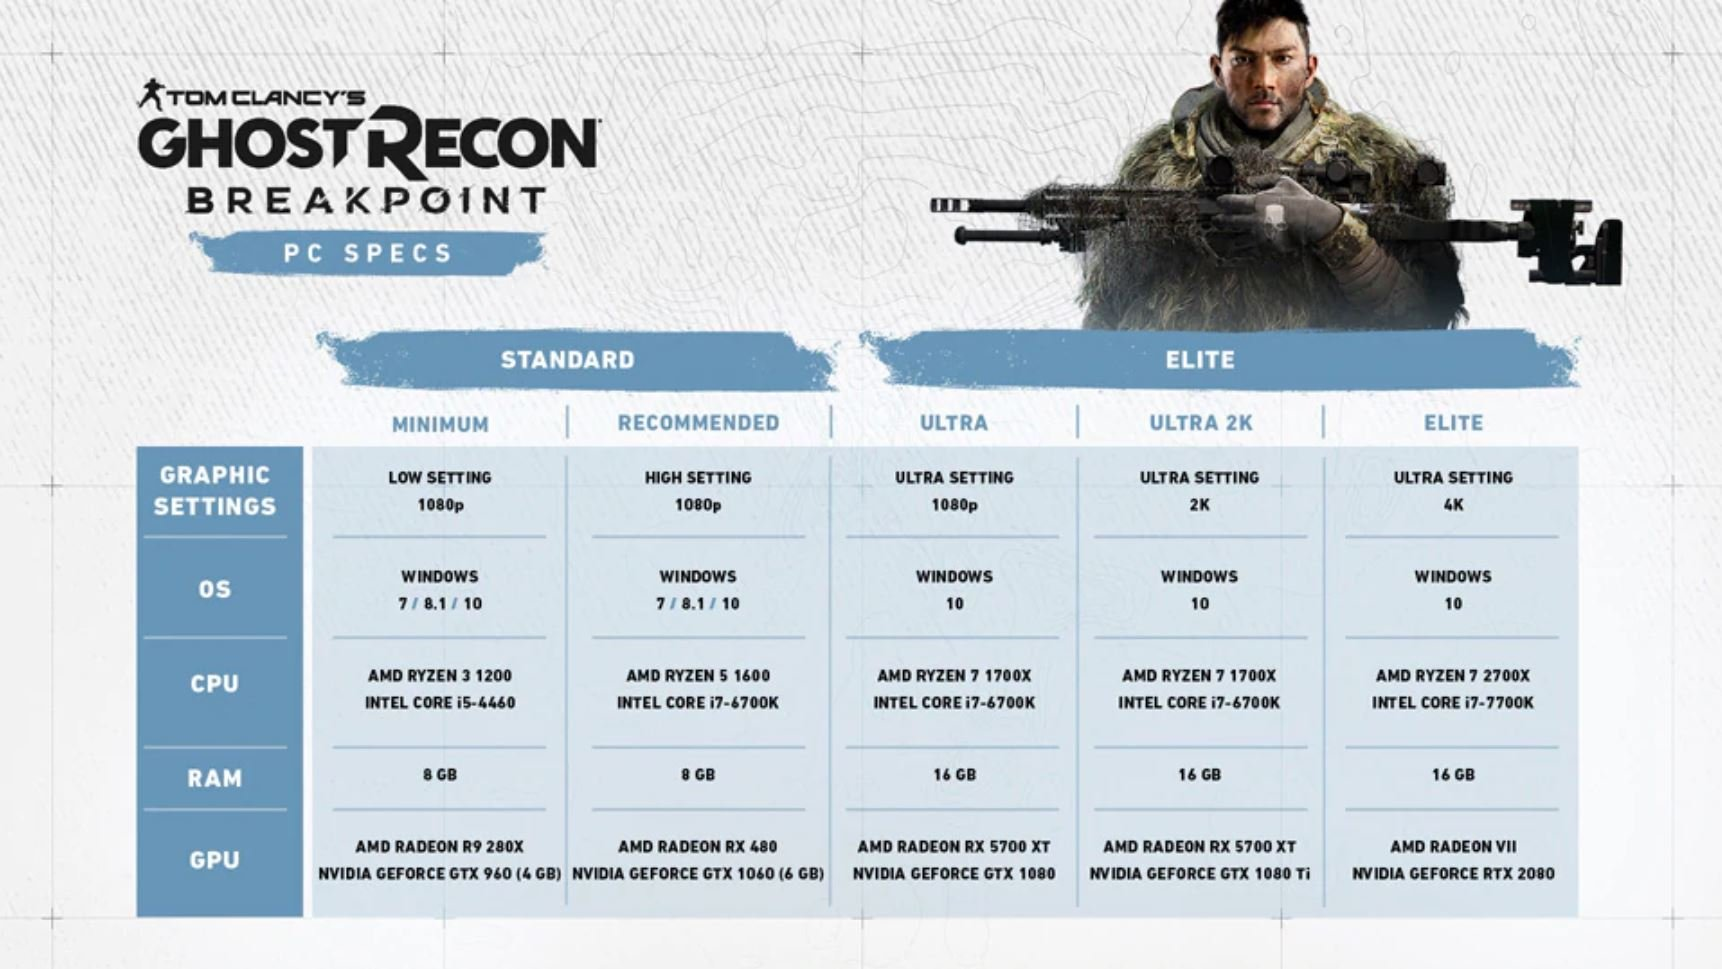 Ghost Recon Breakpoint PC requirements and specs